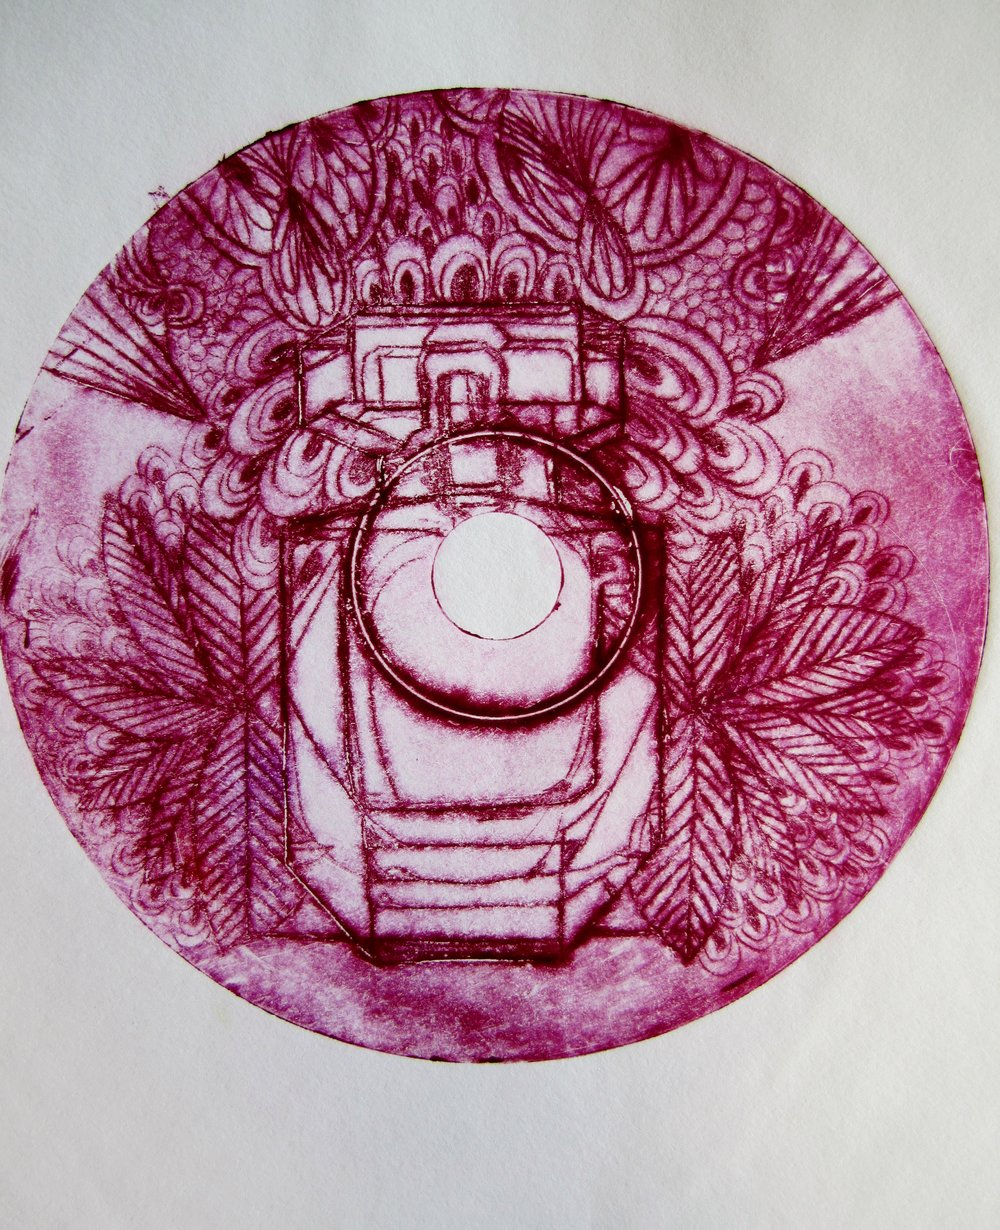 Image 7. Susan Greenbank - CD etching.JPG